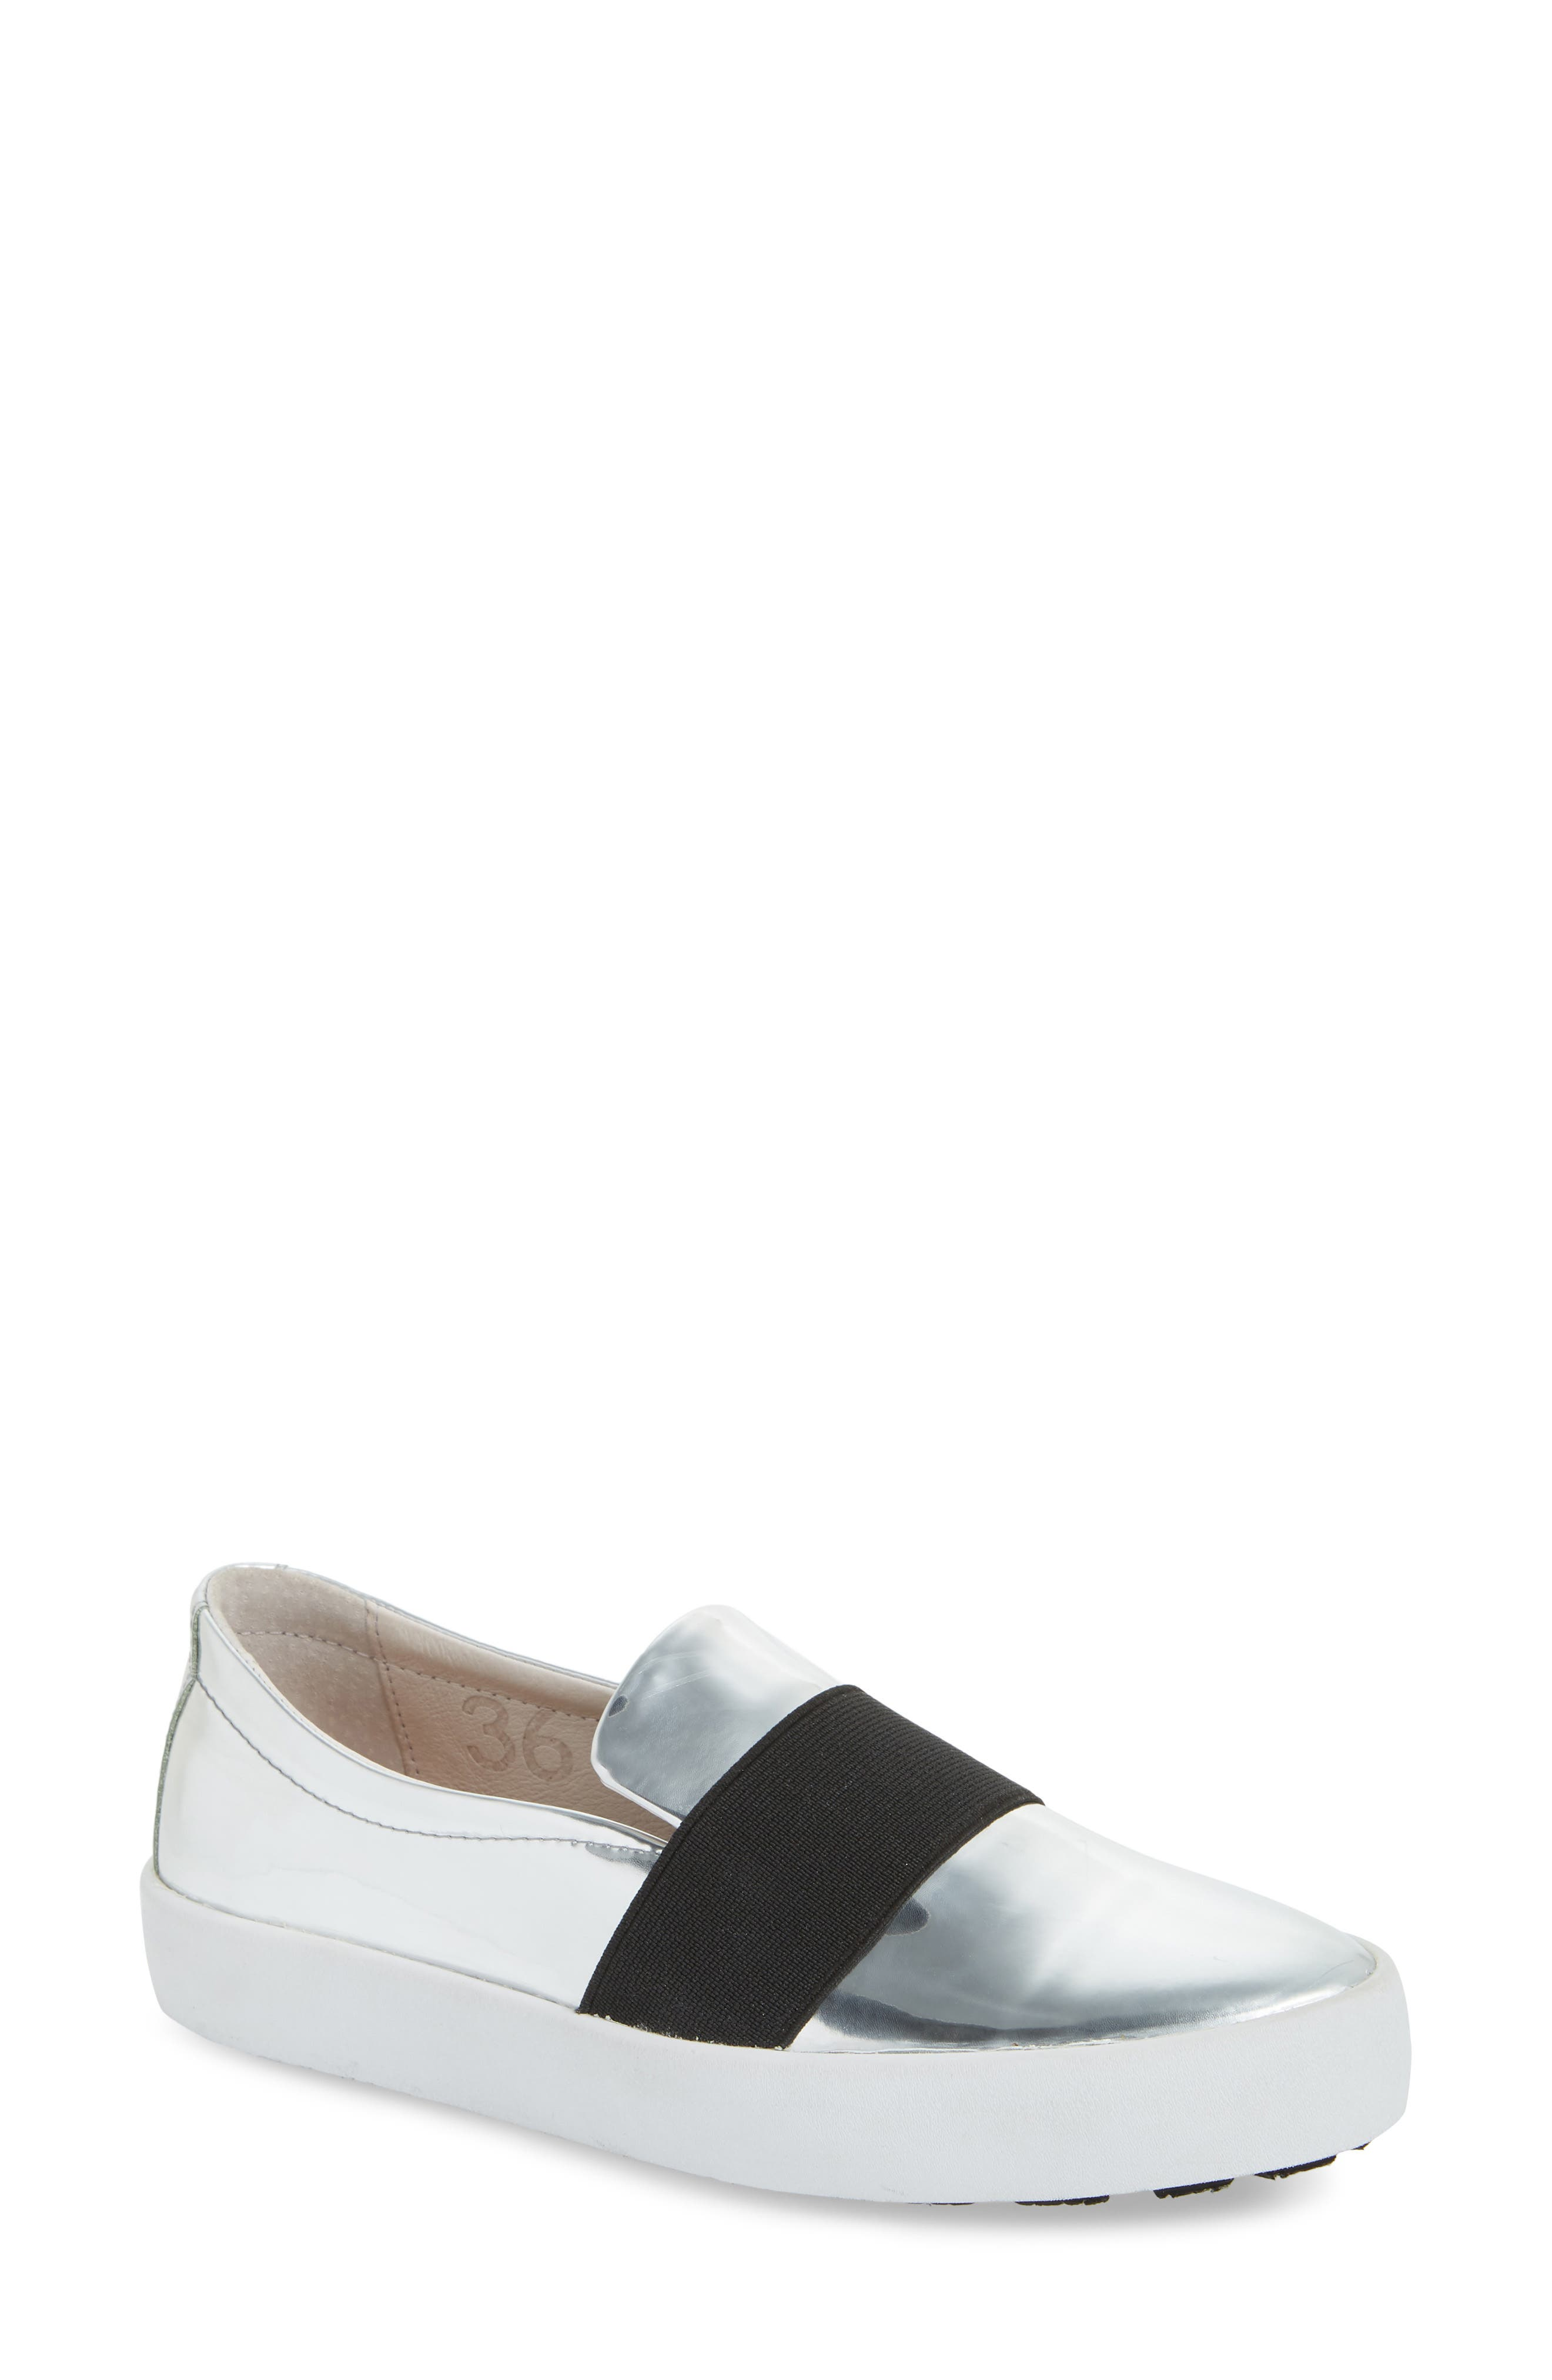 PL99 Slip-On Sneaker,                         Main,                         color, Silver Leather